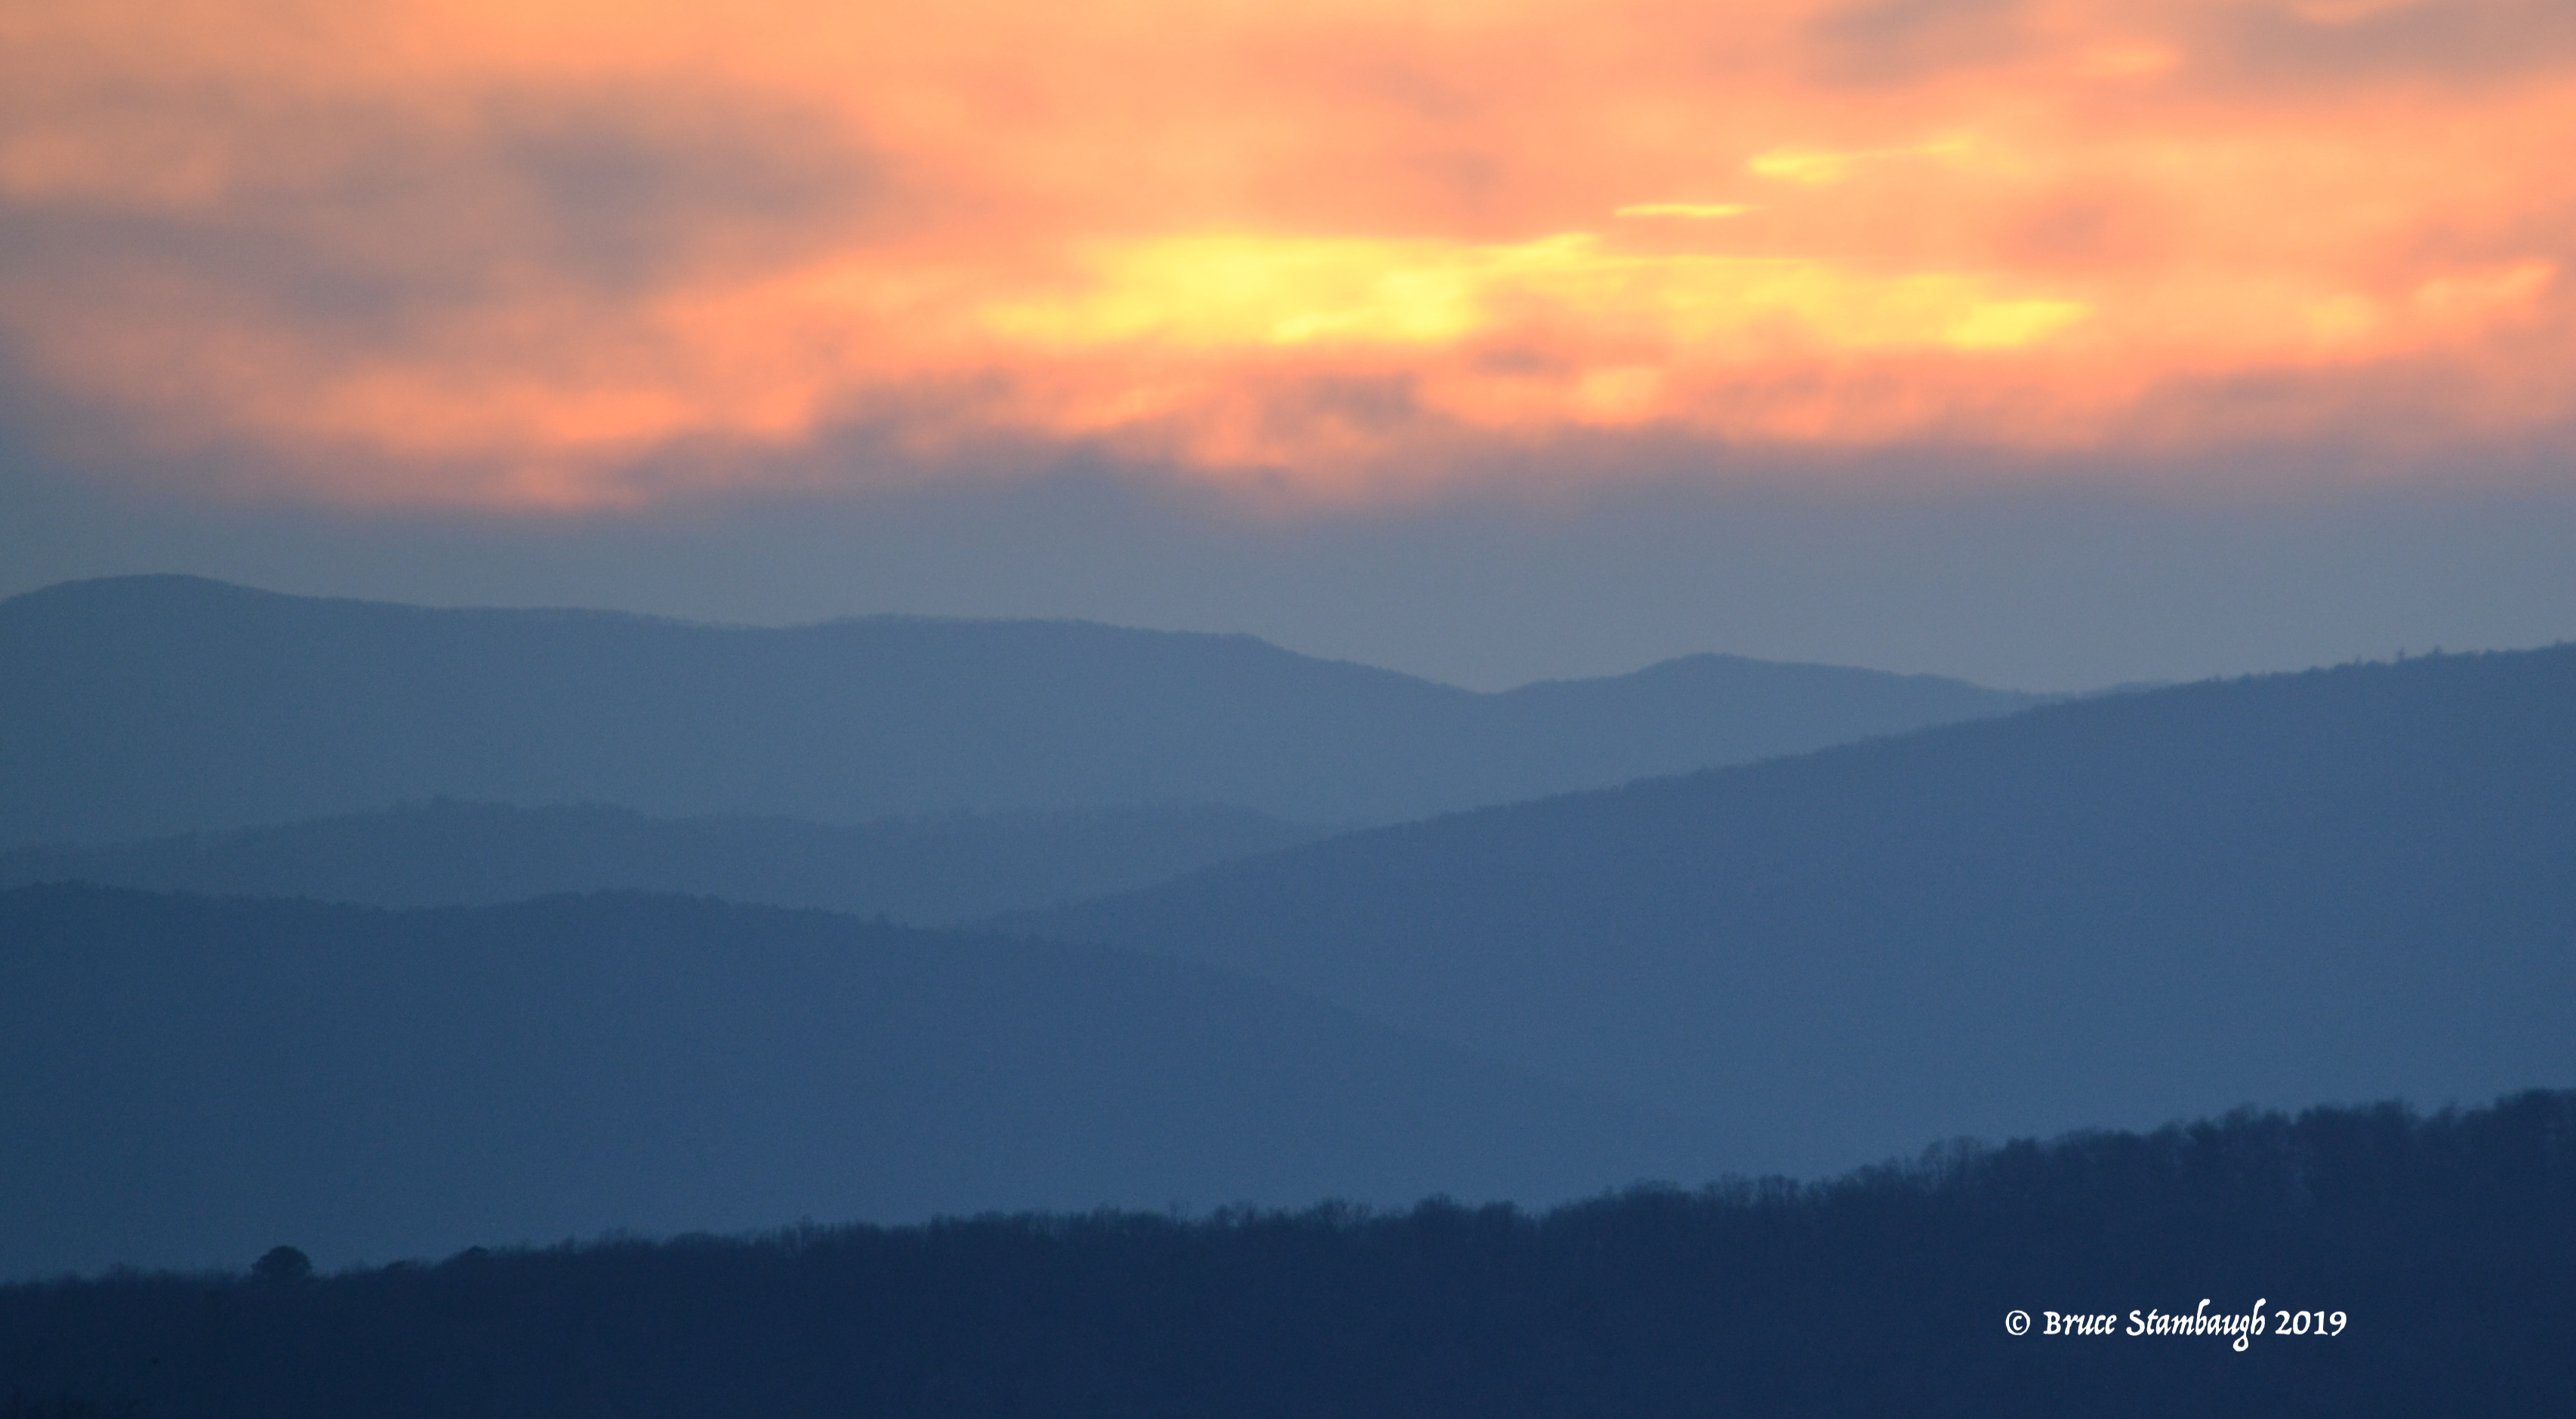 impressionism, Allegheny Mountains, sunset